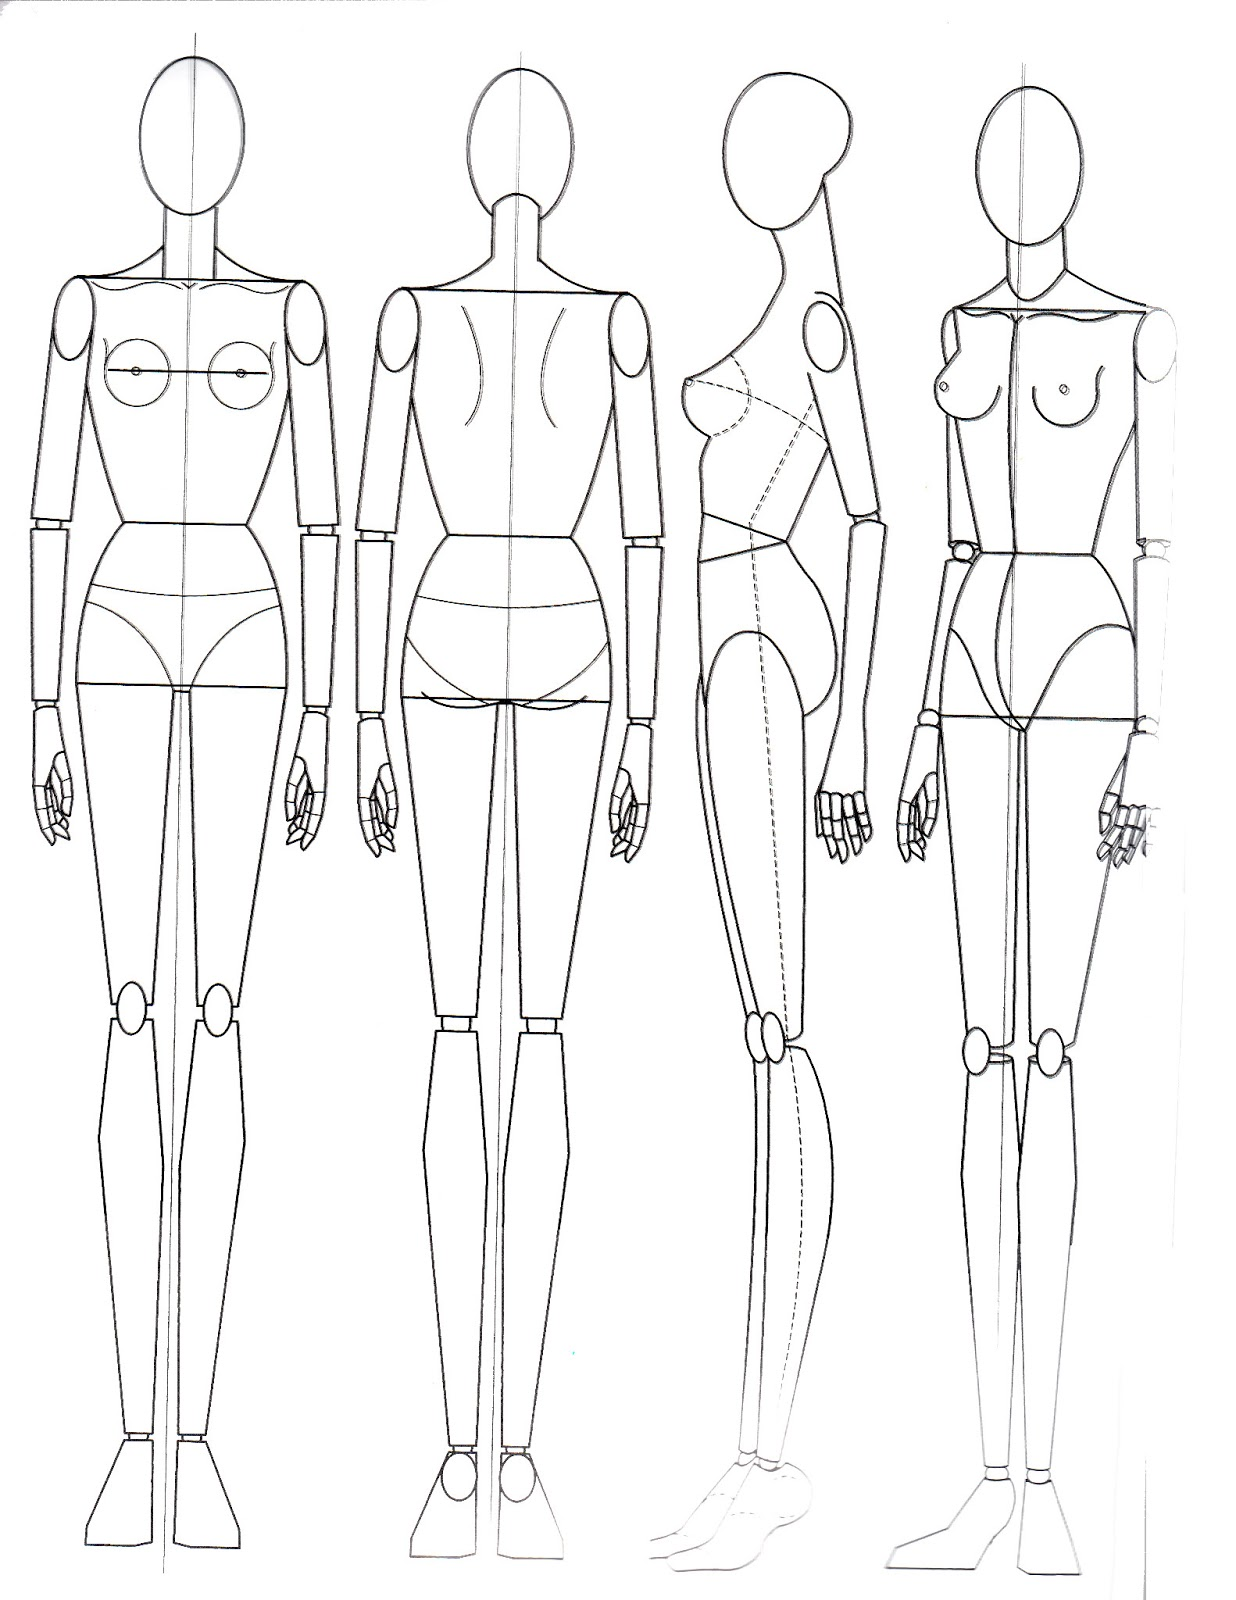 Paper Doll School: The Basics of Anatomy